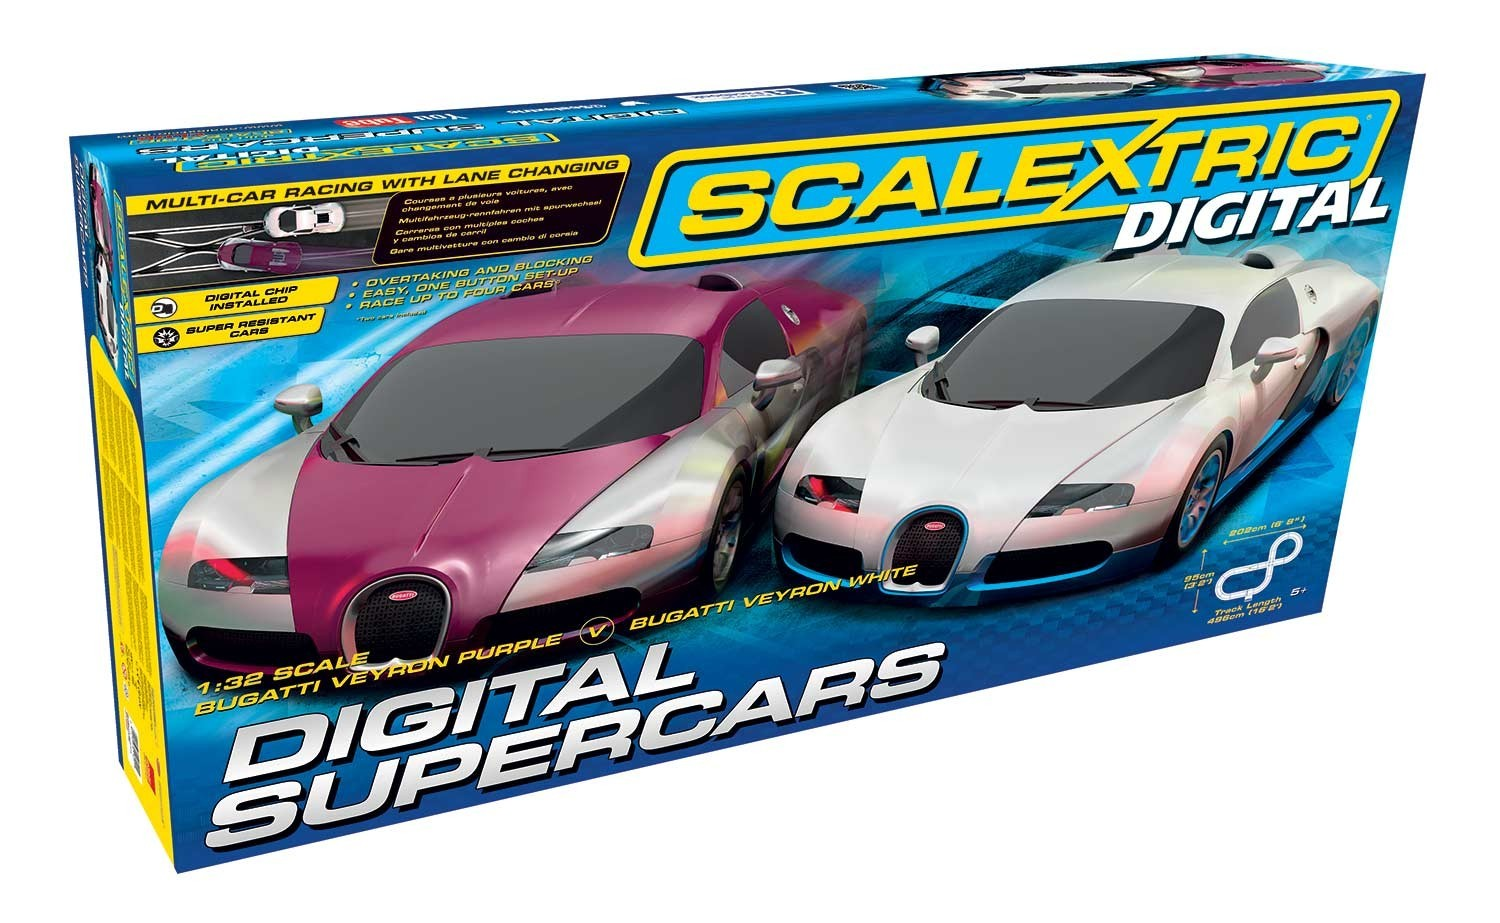 DIGITAL - Supercars Set